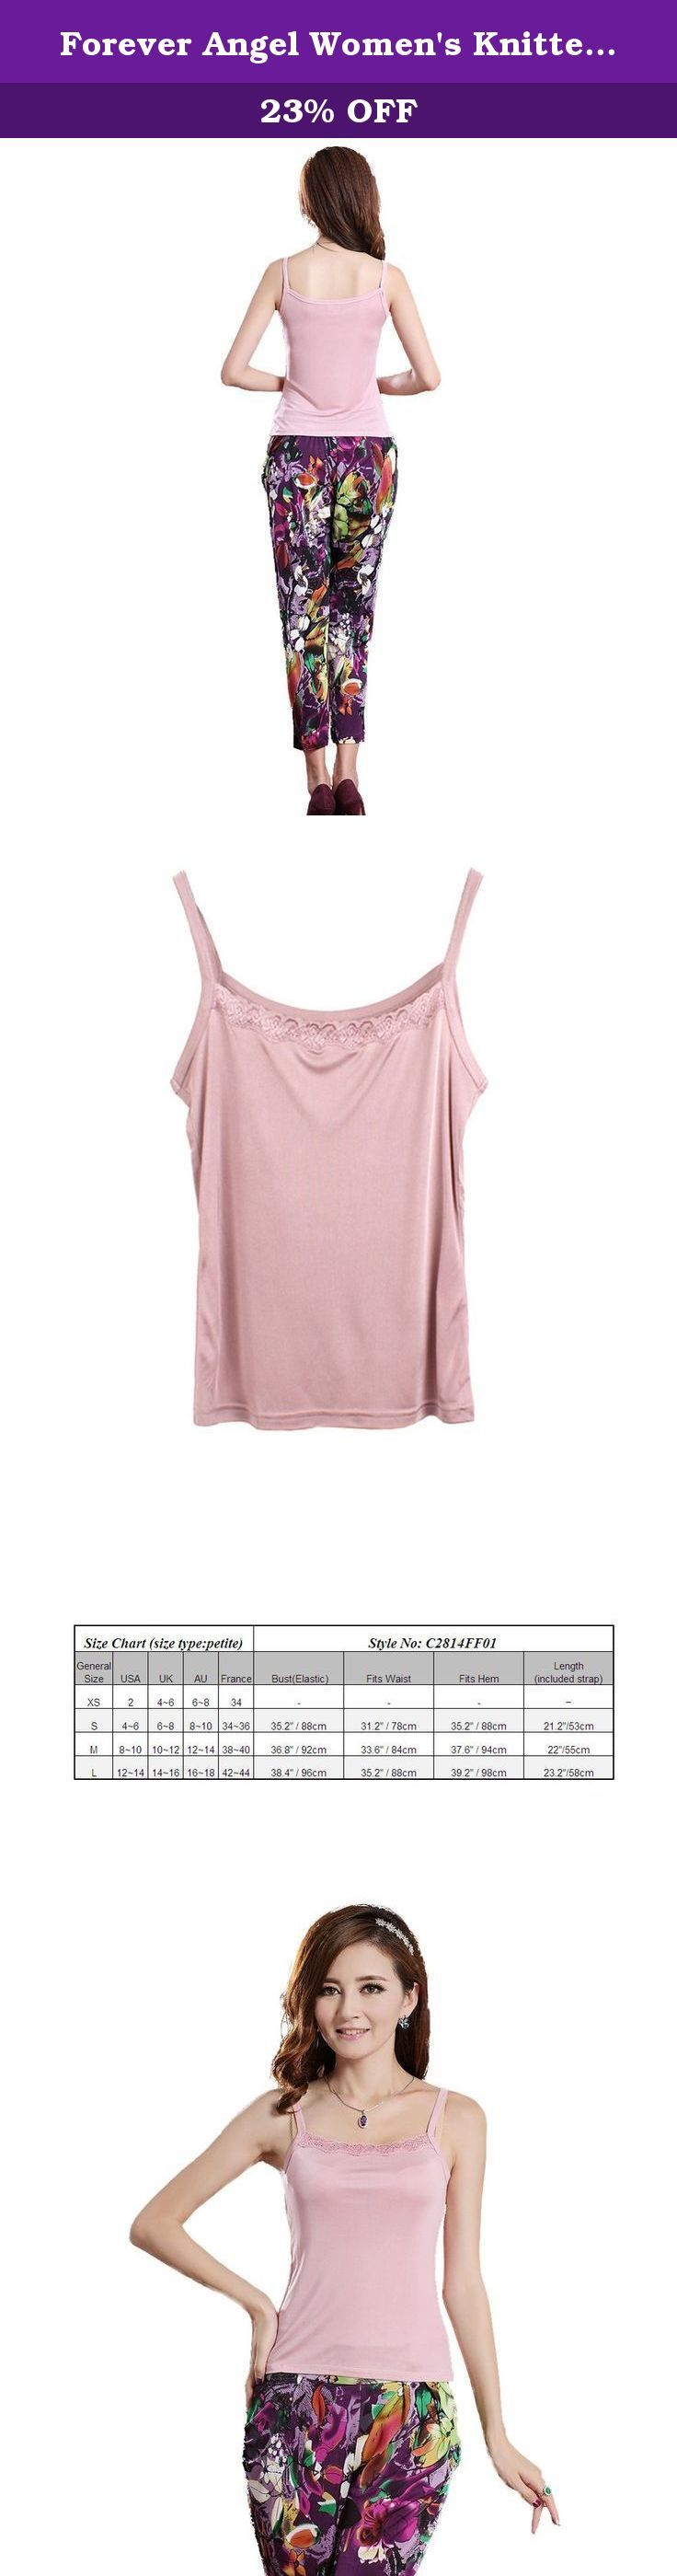 "Forever Angel Women's Knitted Silk Lace Camisole Top Dusky pink Size L. ♦This top features pretty lace, made of 100% Mulberry silk with stretch, more comfortable,soft; ♦The extremely soft knitted-silk material will gently hug your body and will not create any pressure points even when you creased it ; ♦Silk knitting is made of superior quality silk which is known as the ""Queen of Fiber"" for its softness, good ventilation, high moisture absorption, high intensity, good elasticity and..."